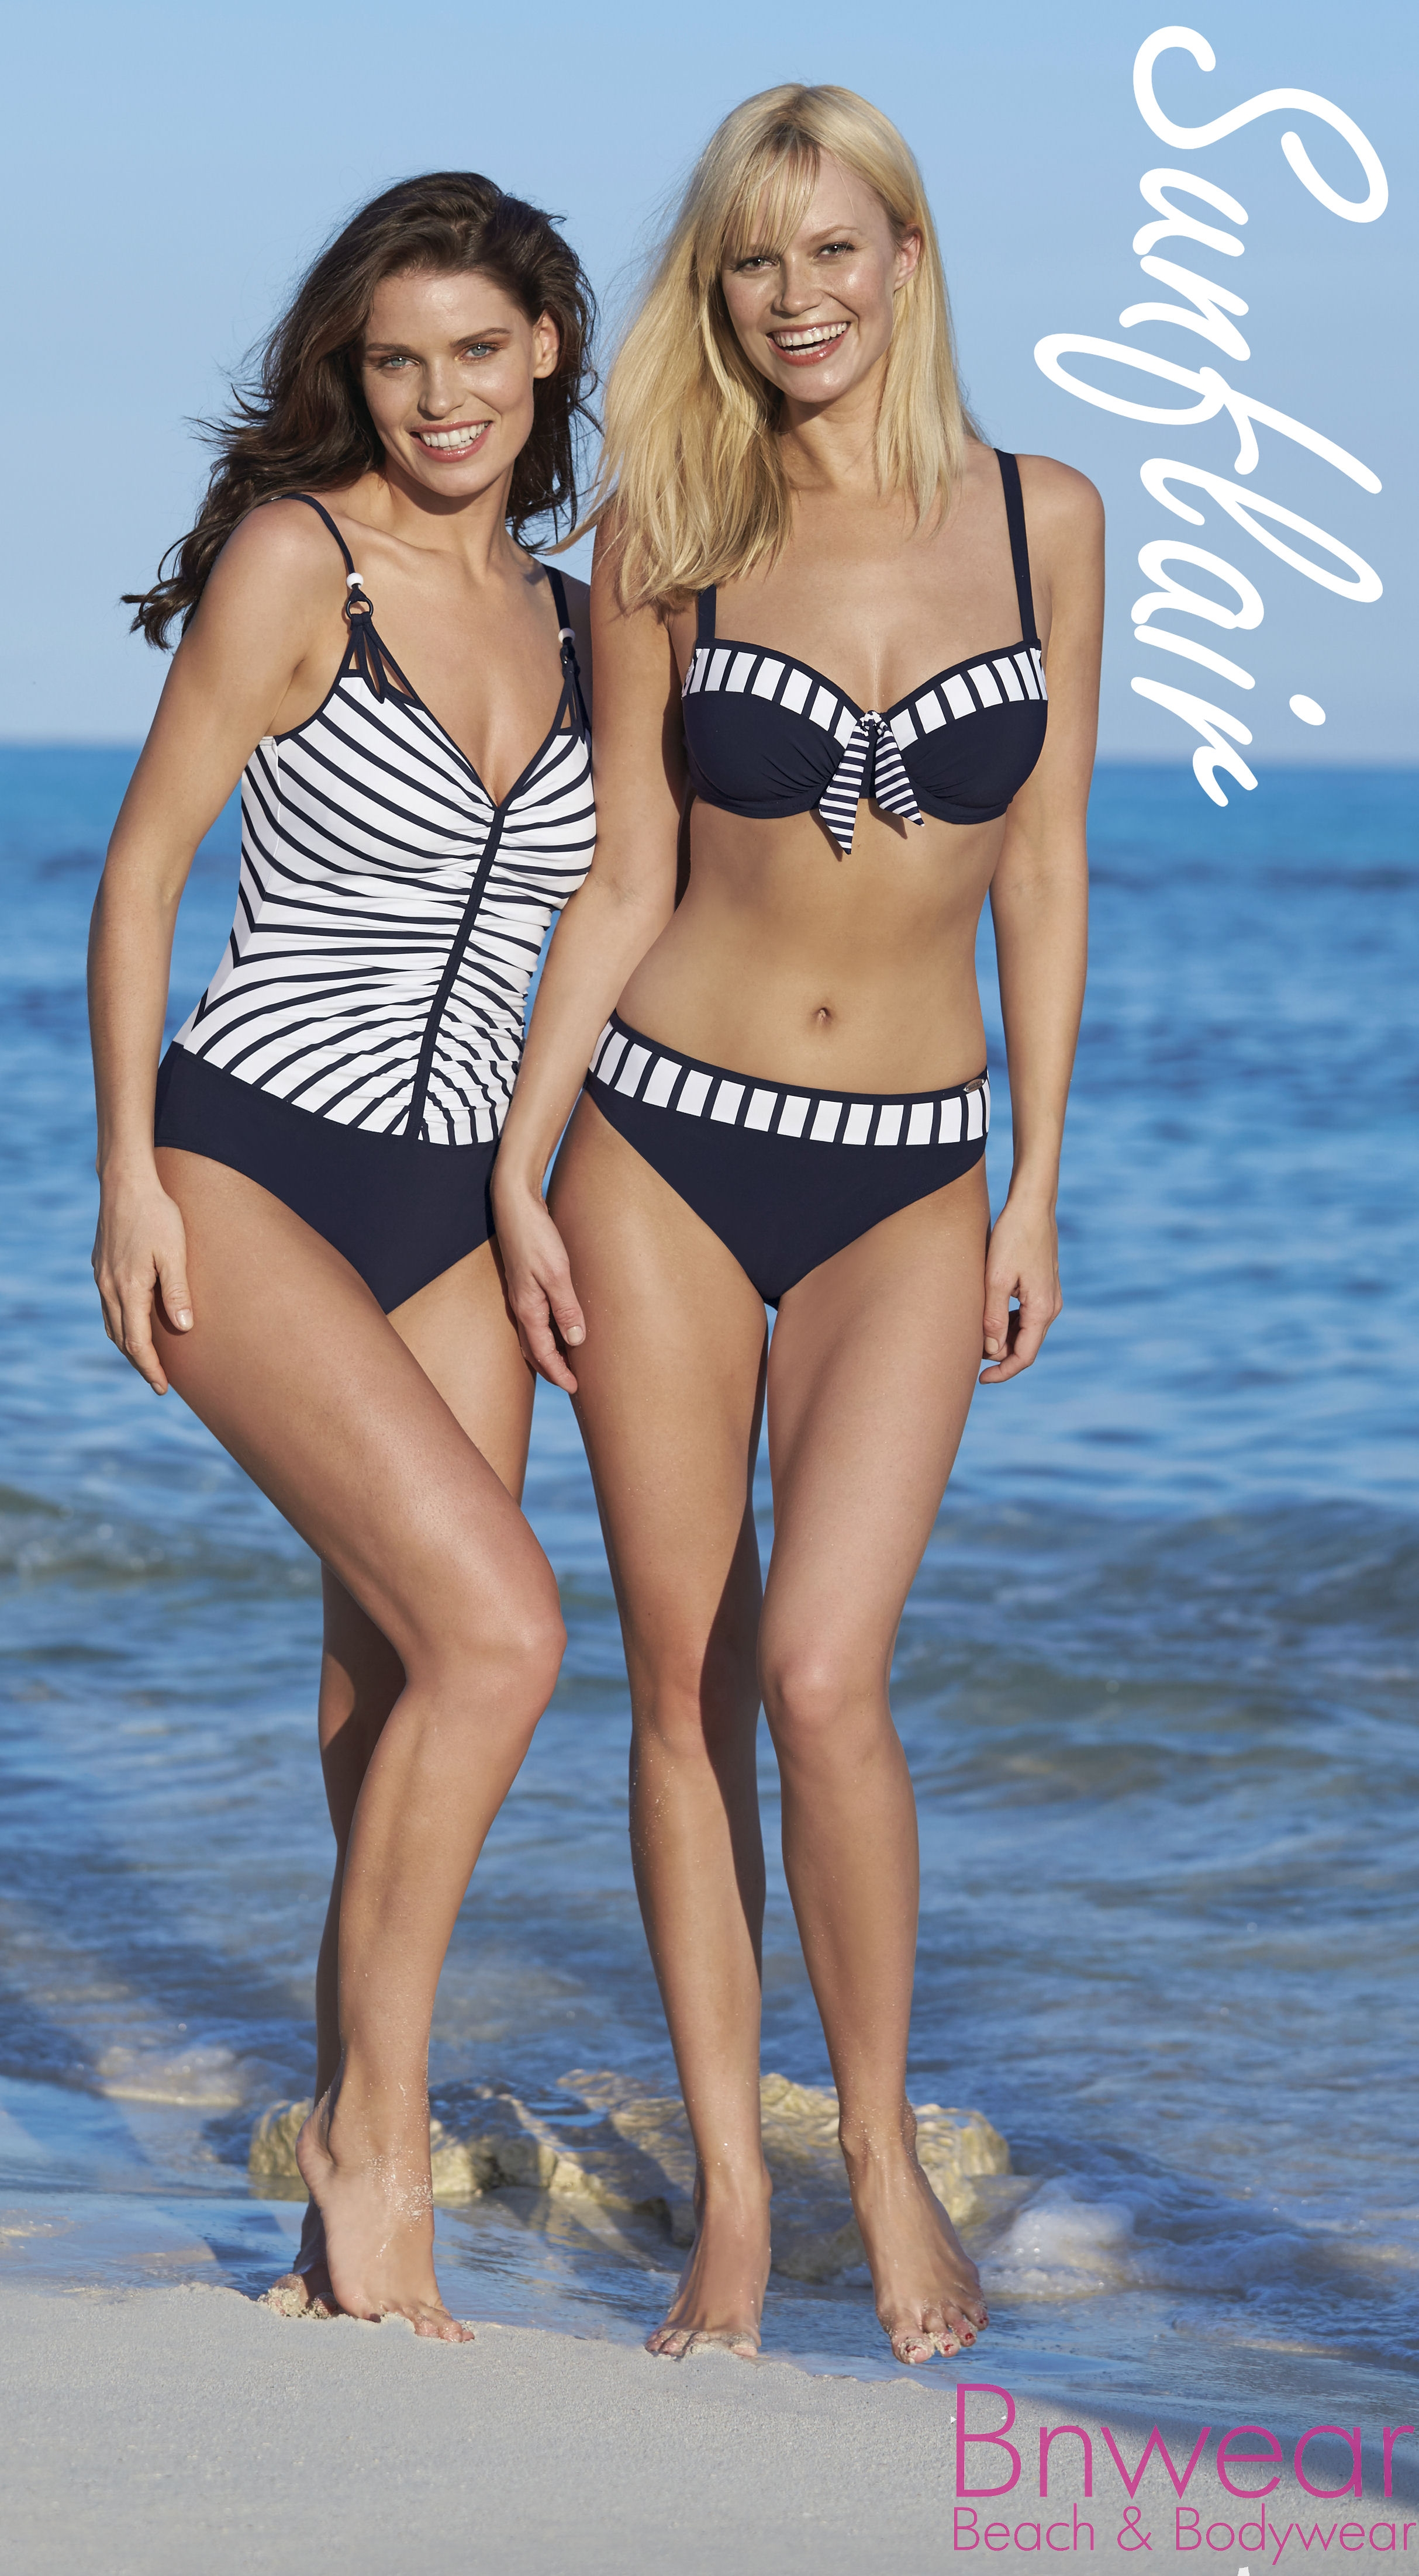 Sunflair bikini 71118 voorgevormd in D ,E,F,G-cup